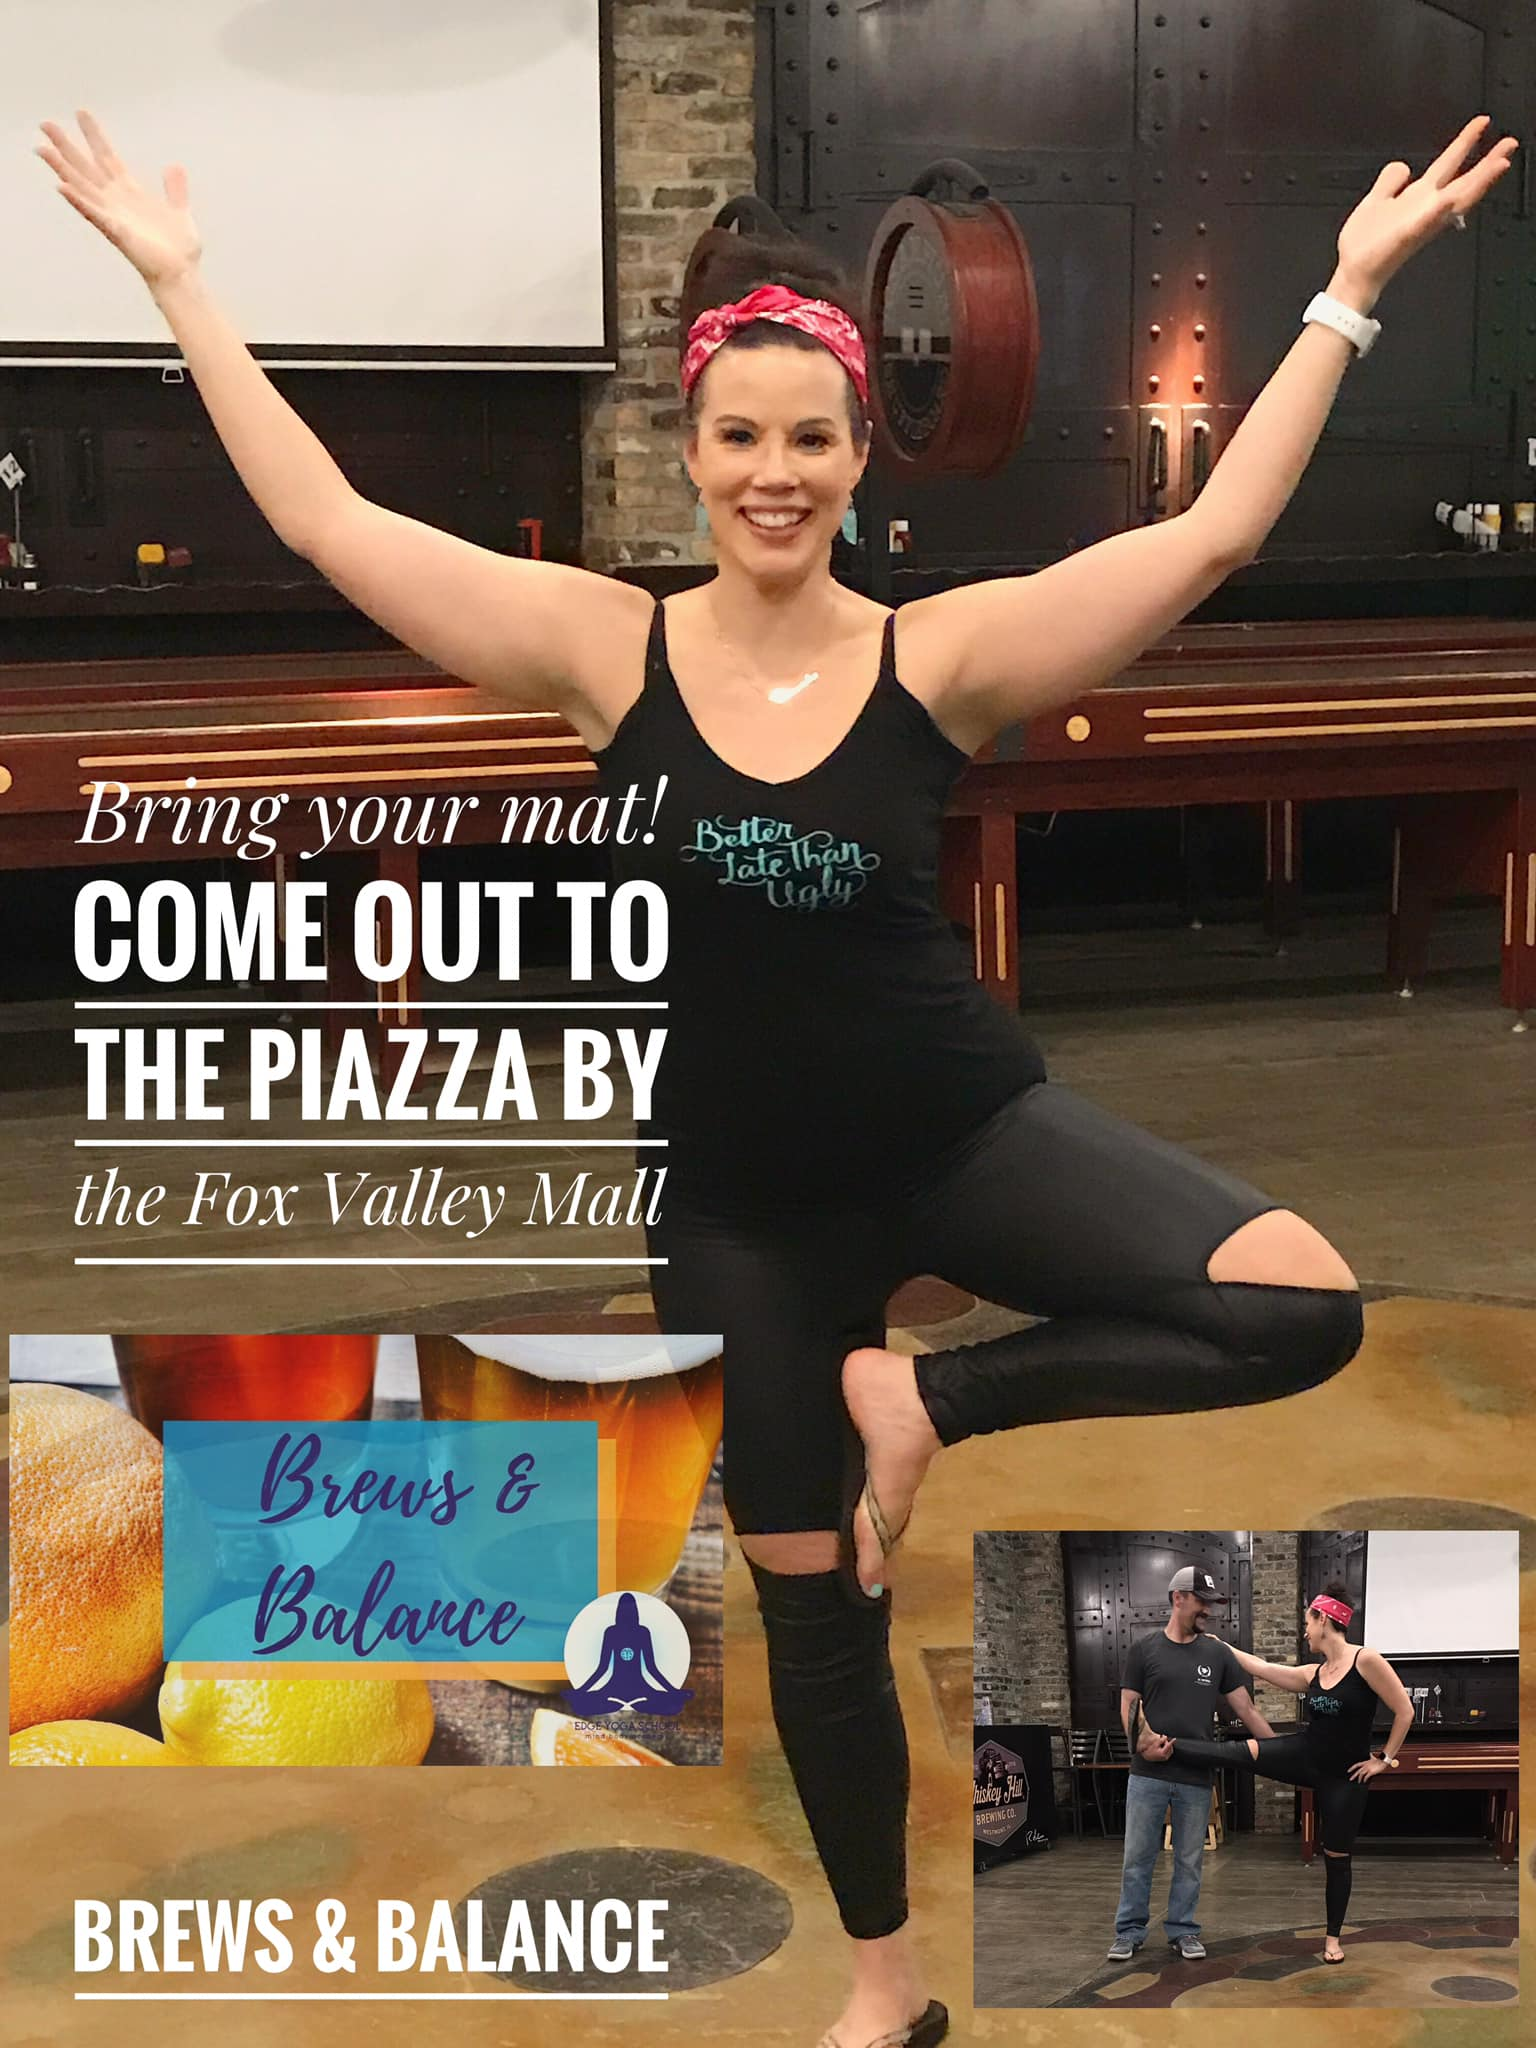 Join us each month at The Piazza - Be sure to subscribe to keep up to date with each event!